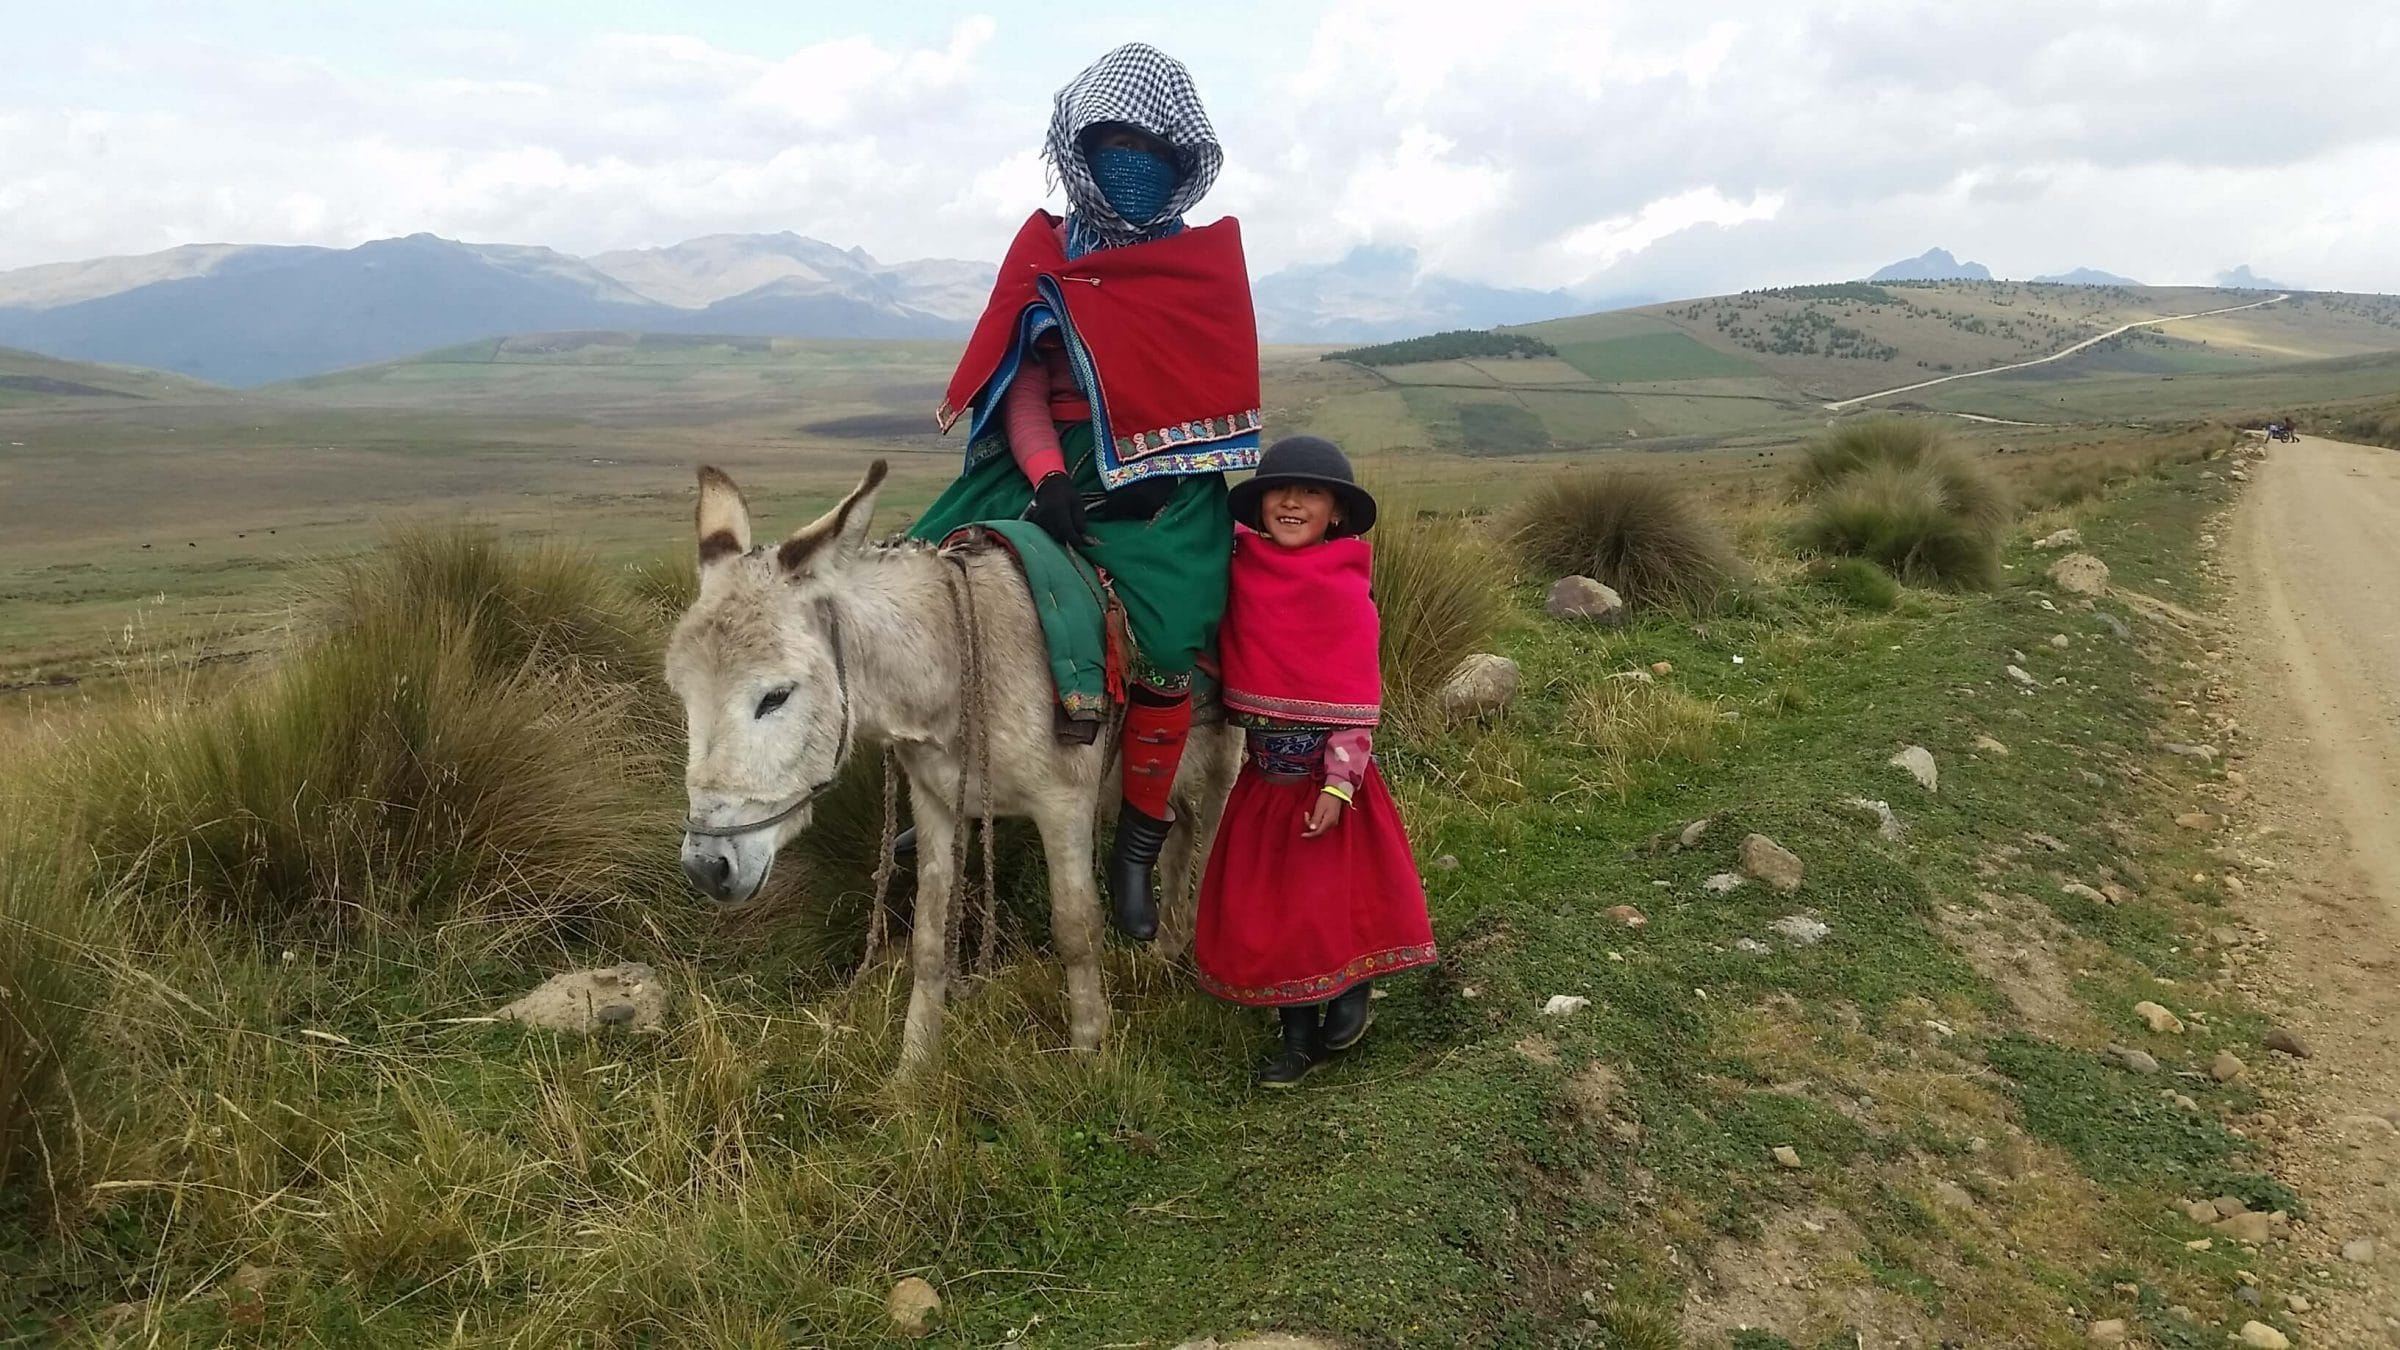 People of Cotopaxi